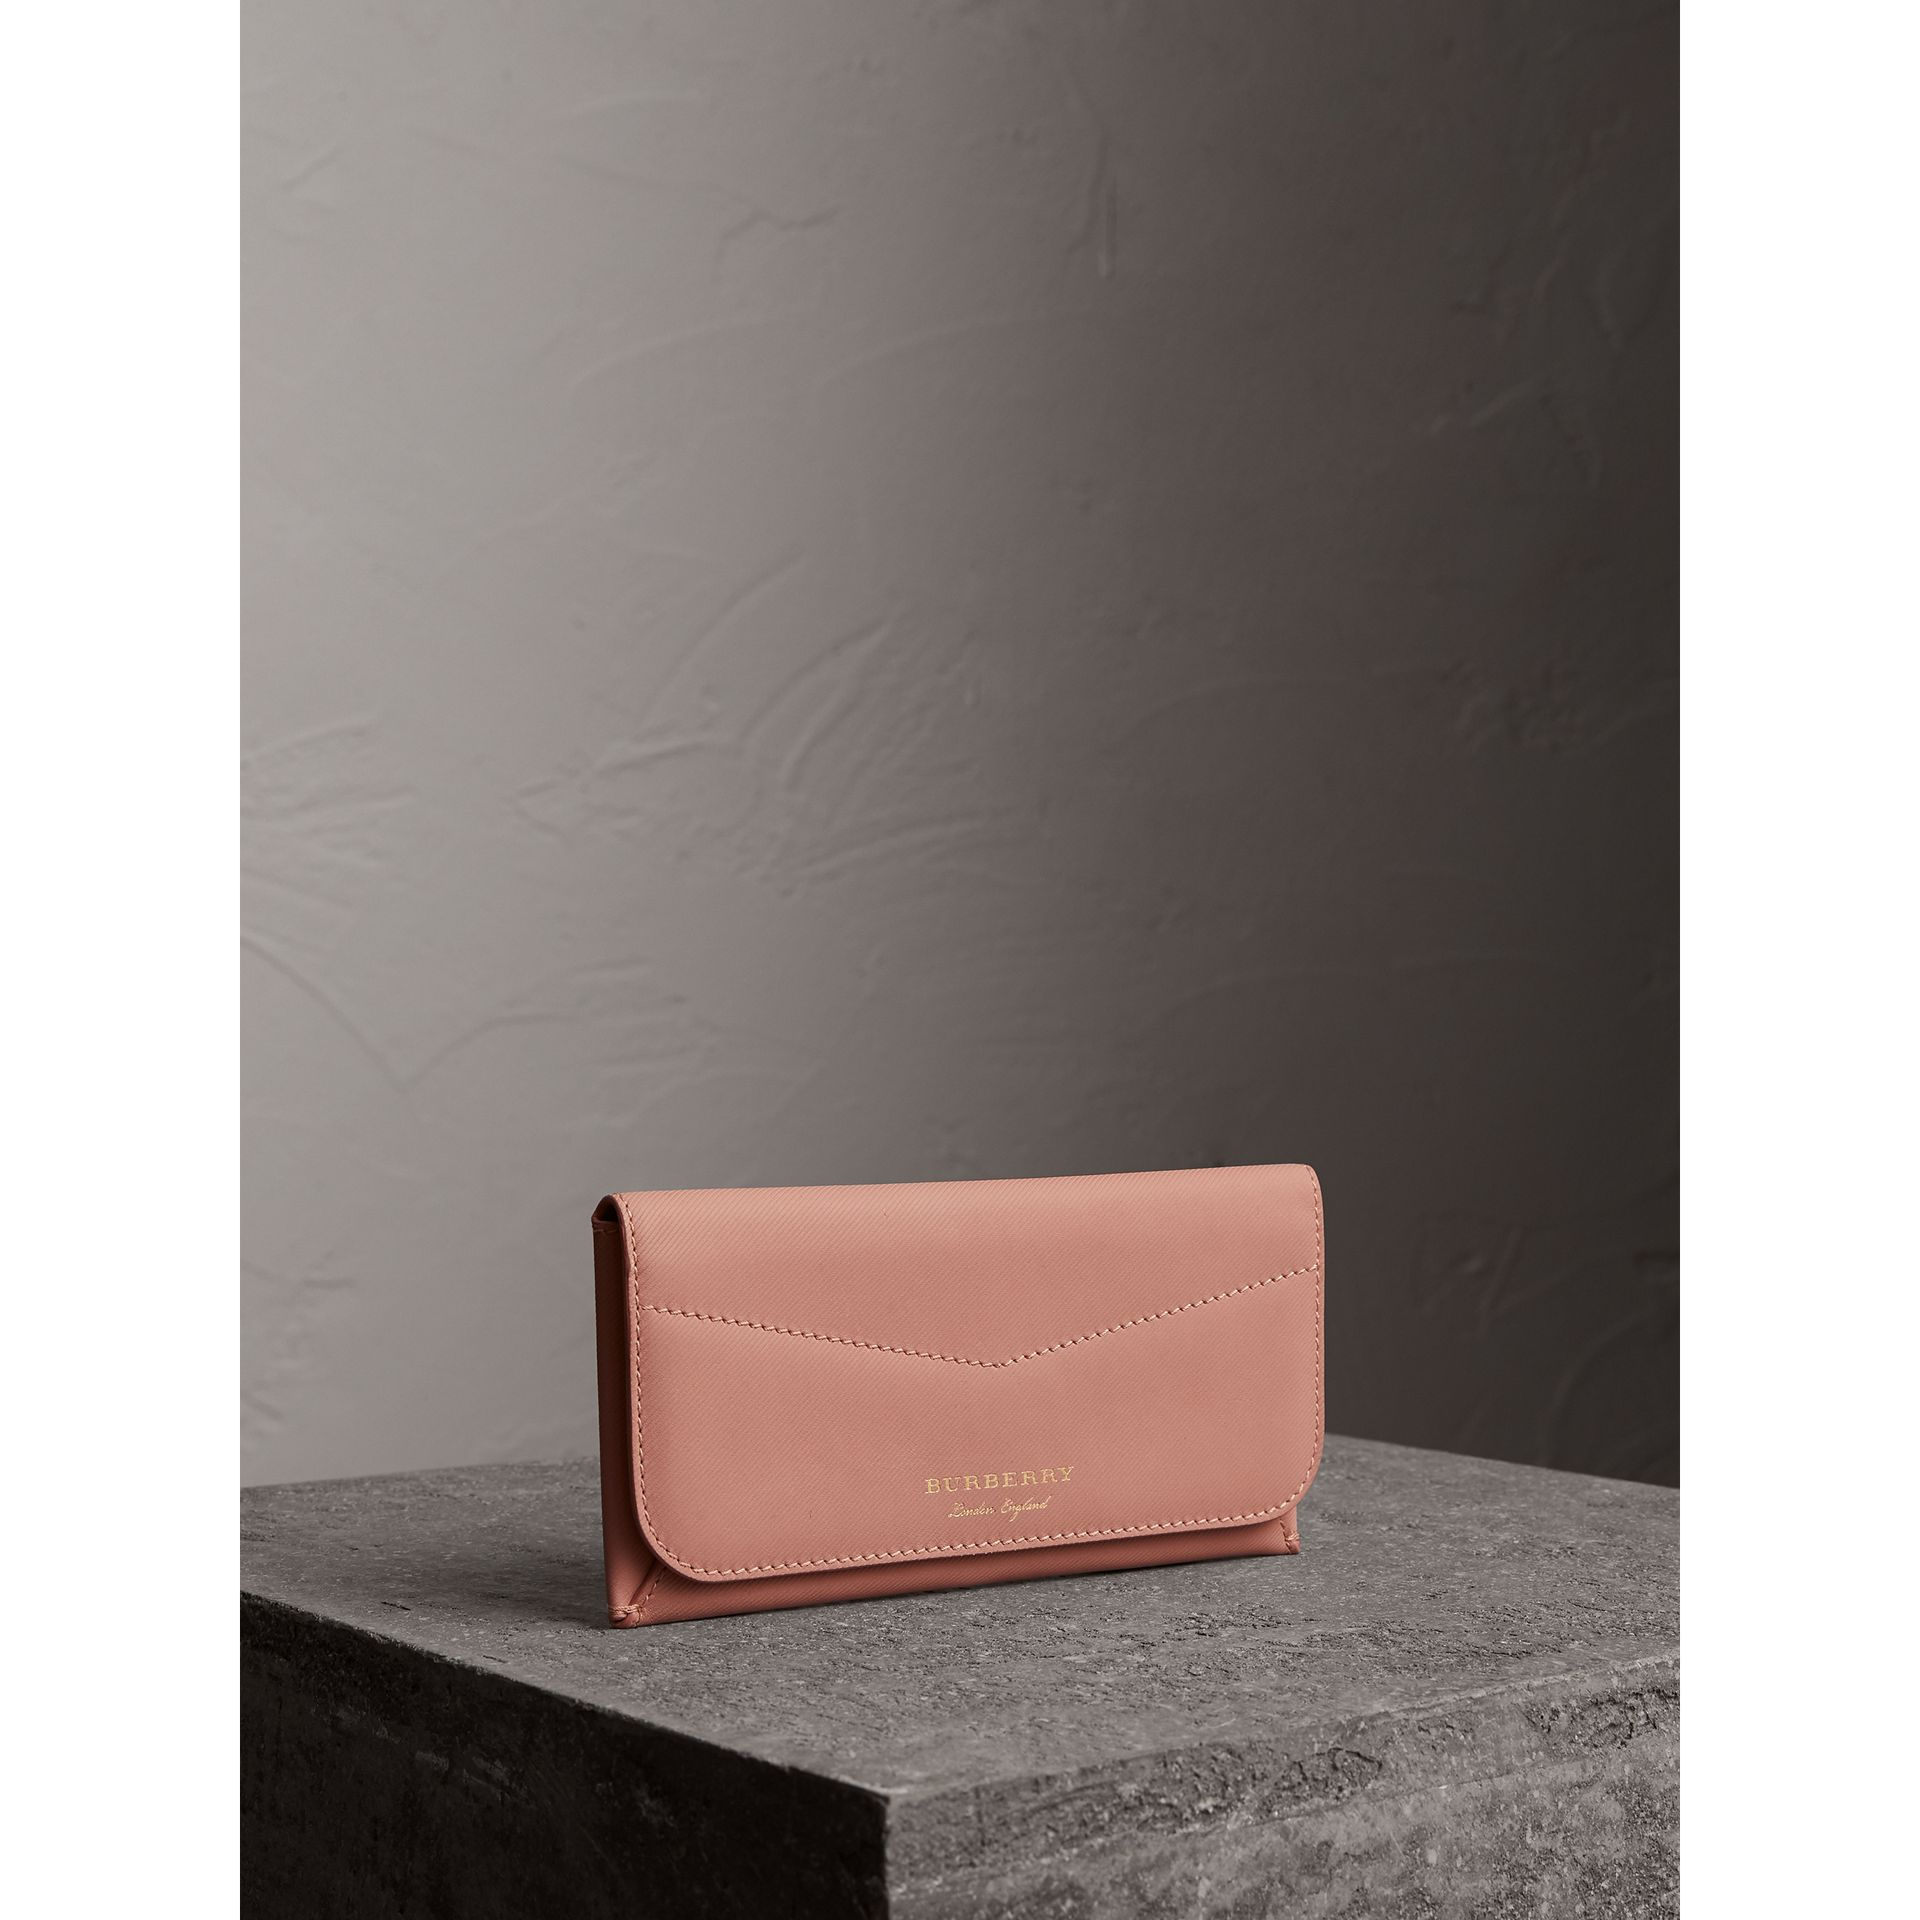 Trench Leather Envelope Wallet in Ash Rose/pale Clementine - Women | Burberry United States - gallery image 1